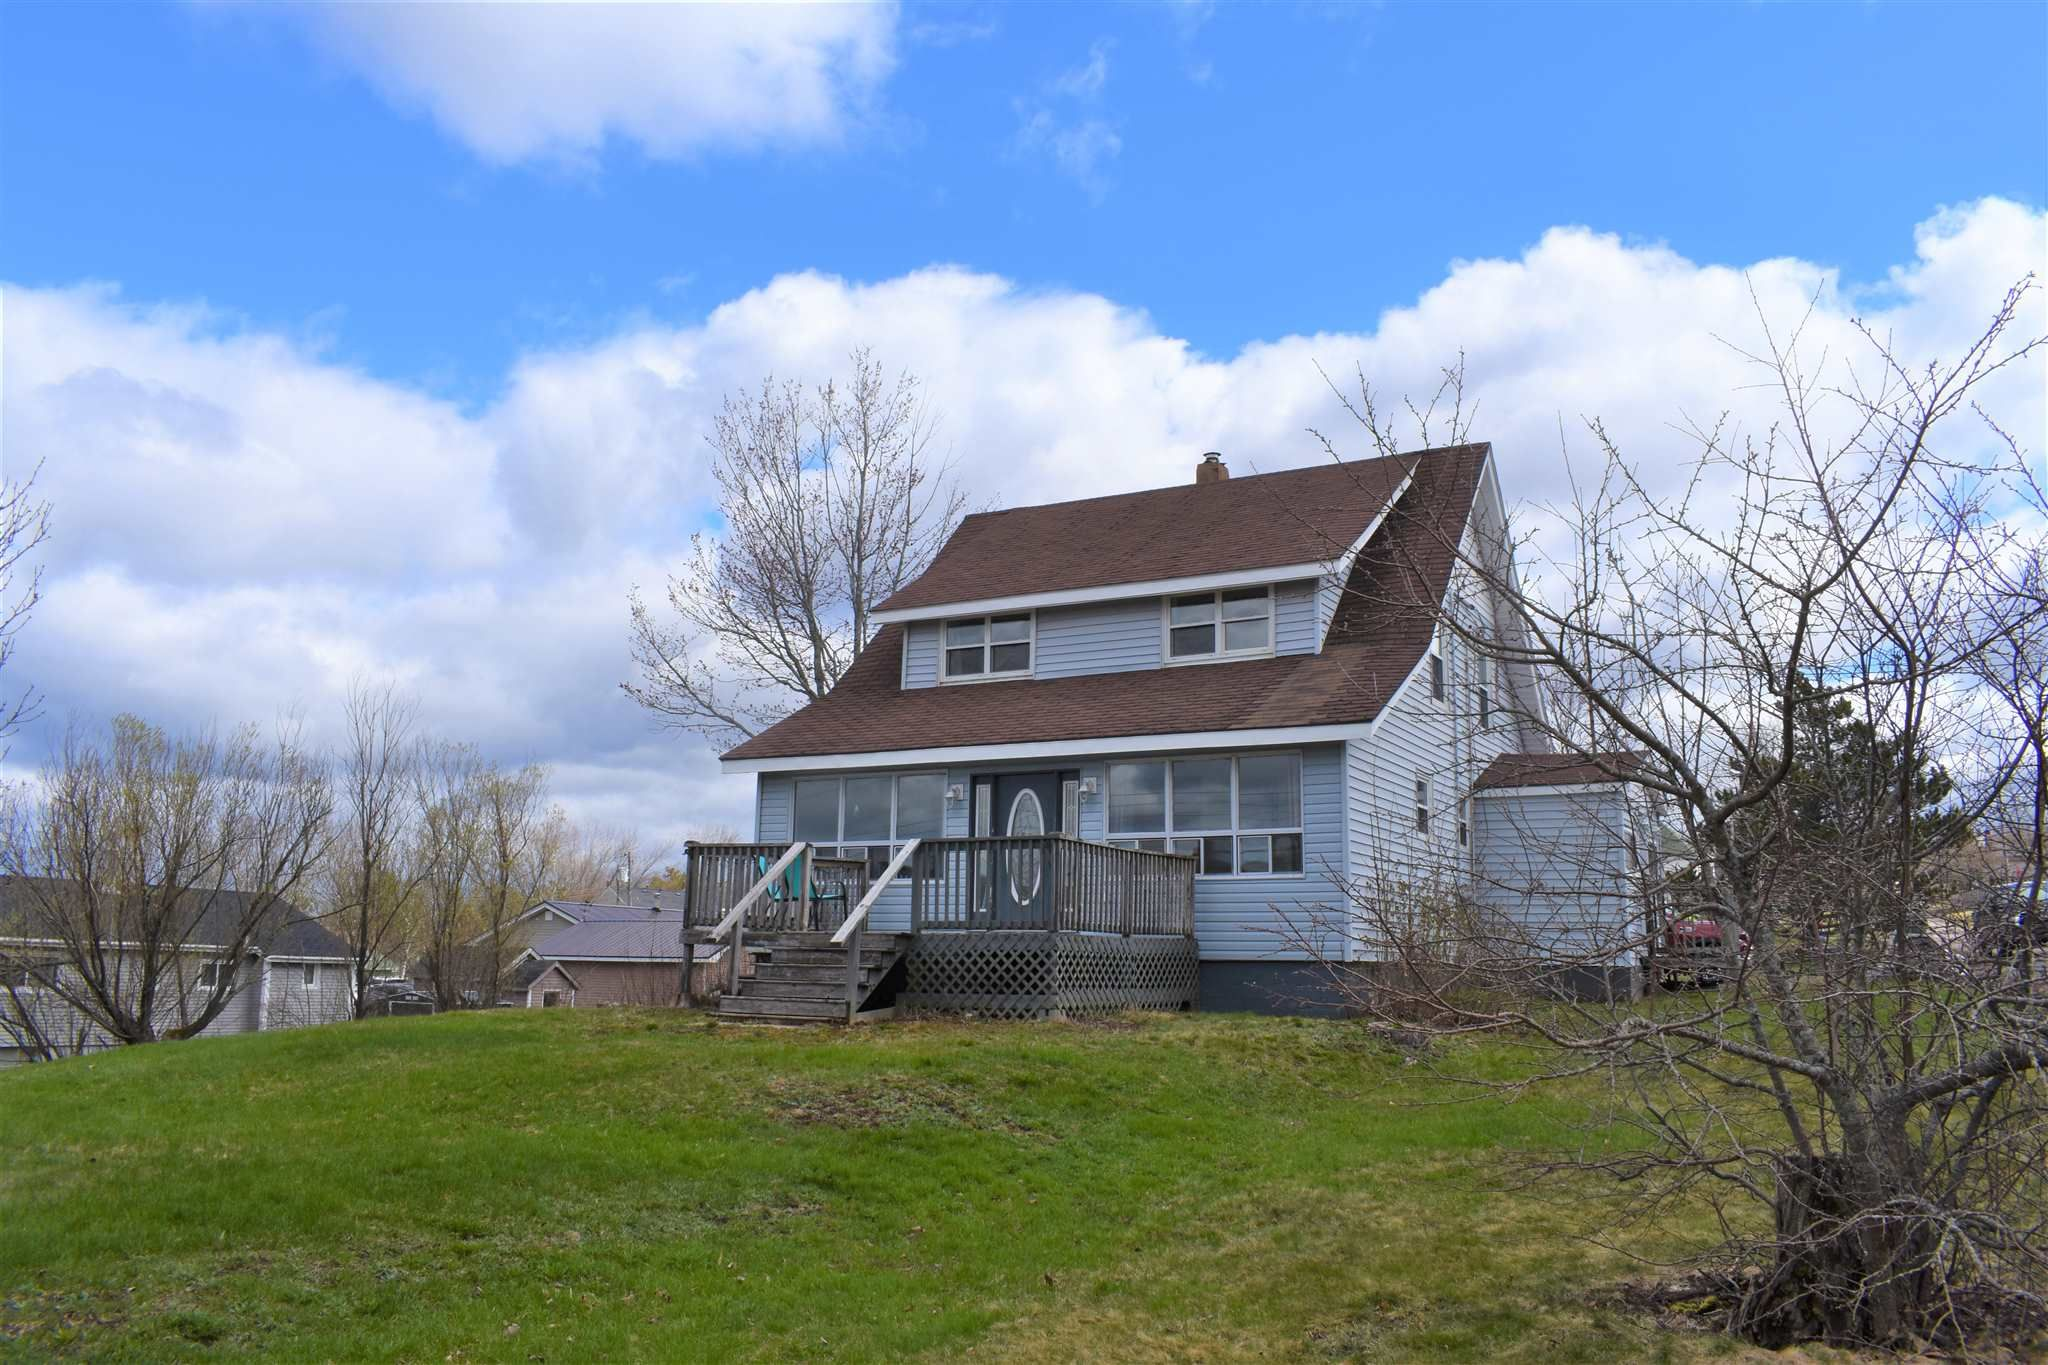 Main Photo: 15 Smith Avenue in Springhill: 102S-South Of Hwy 104, Parrsboro and area Residential for sale (Northern Region)  : MLS®# 202110139